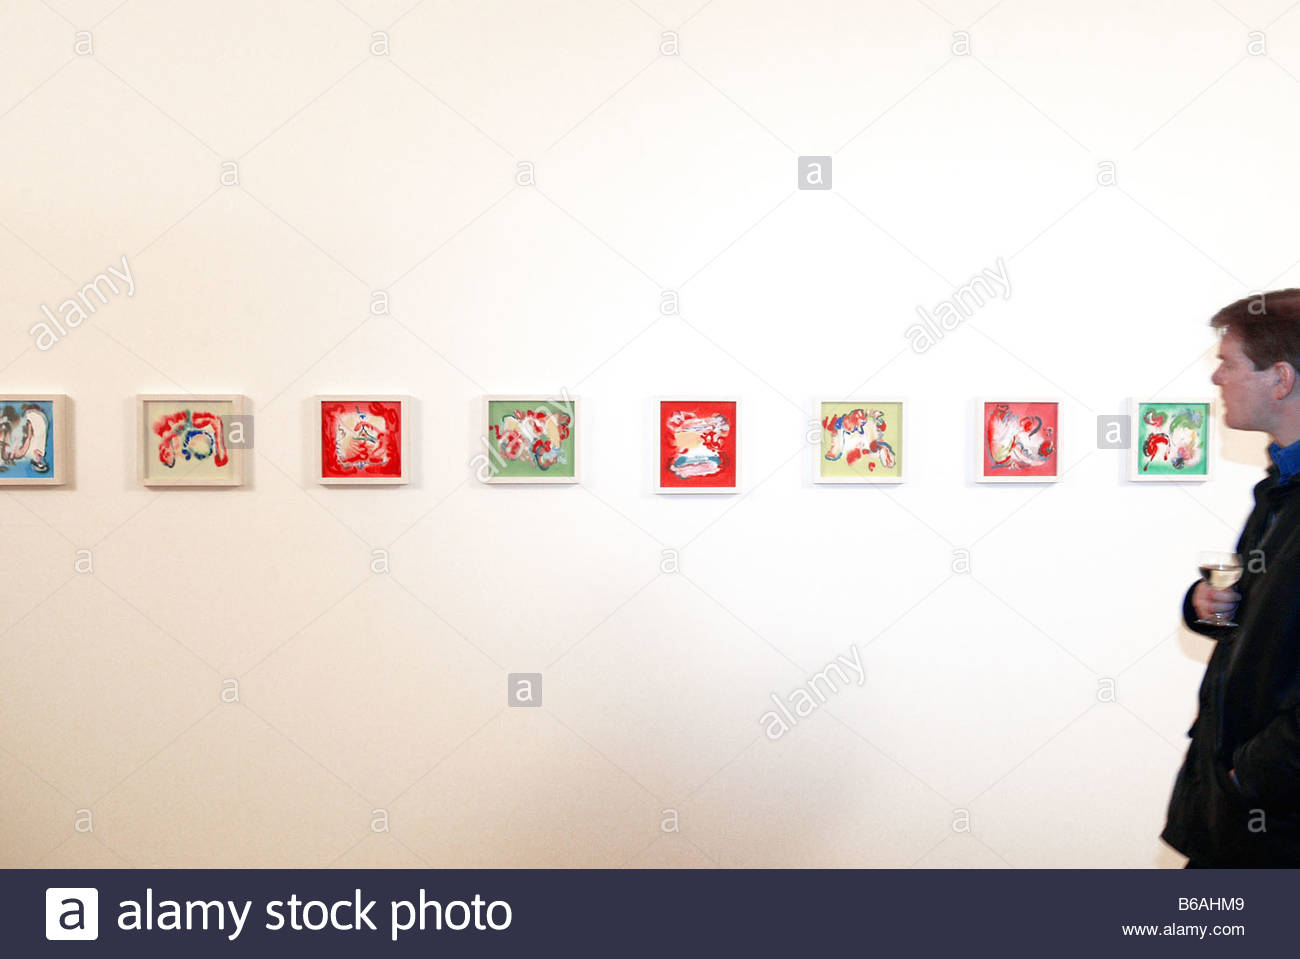 Man looking at paintings in an art gallery - Stock Image